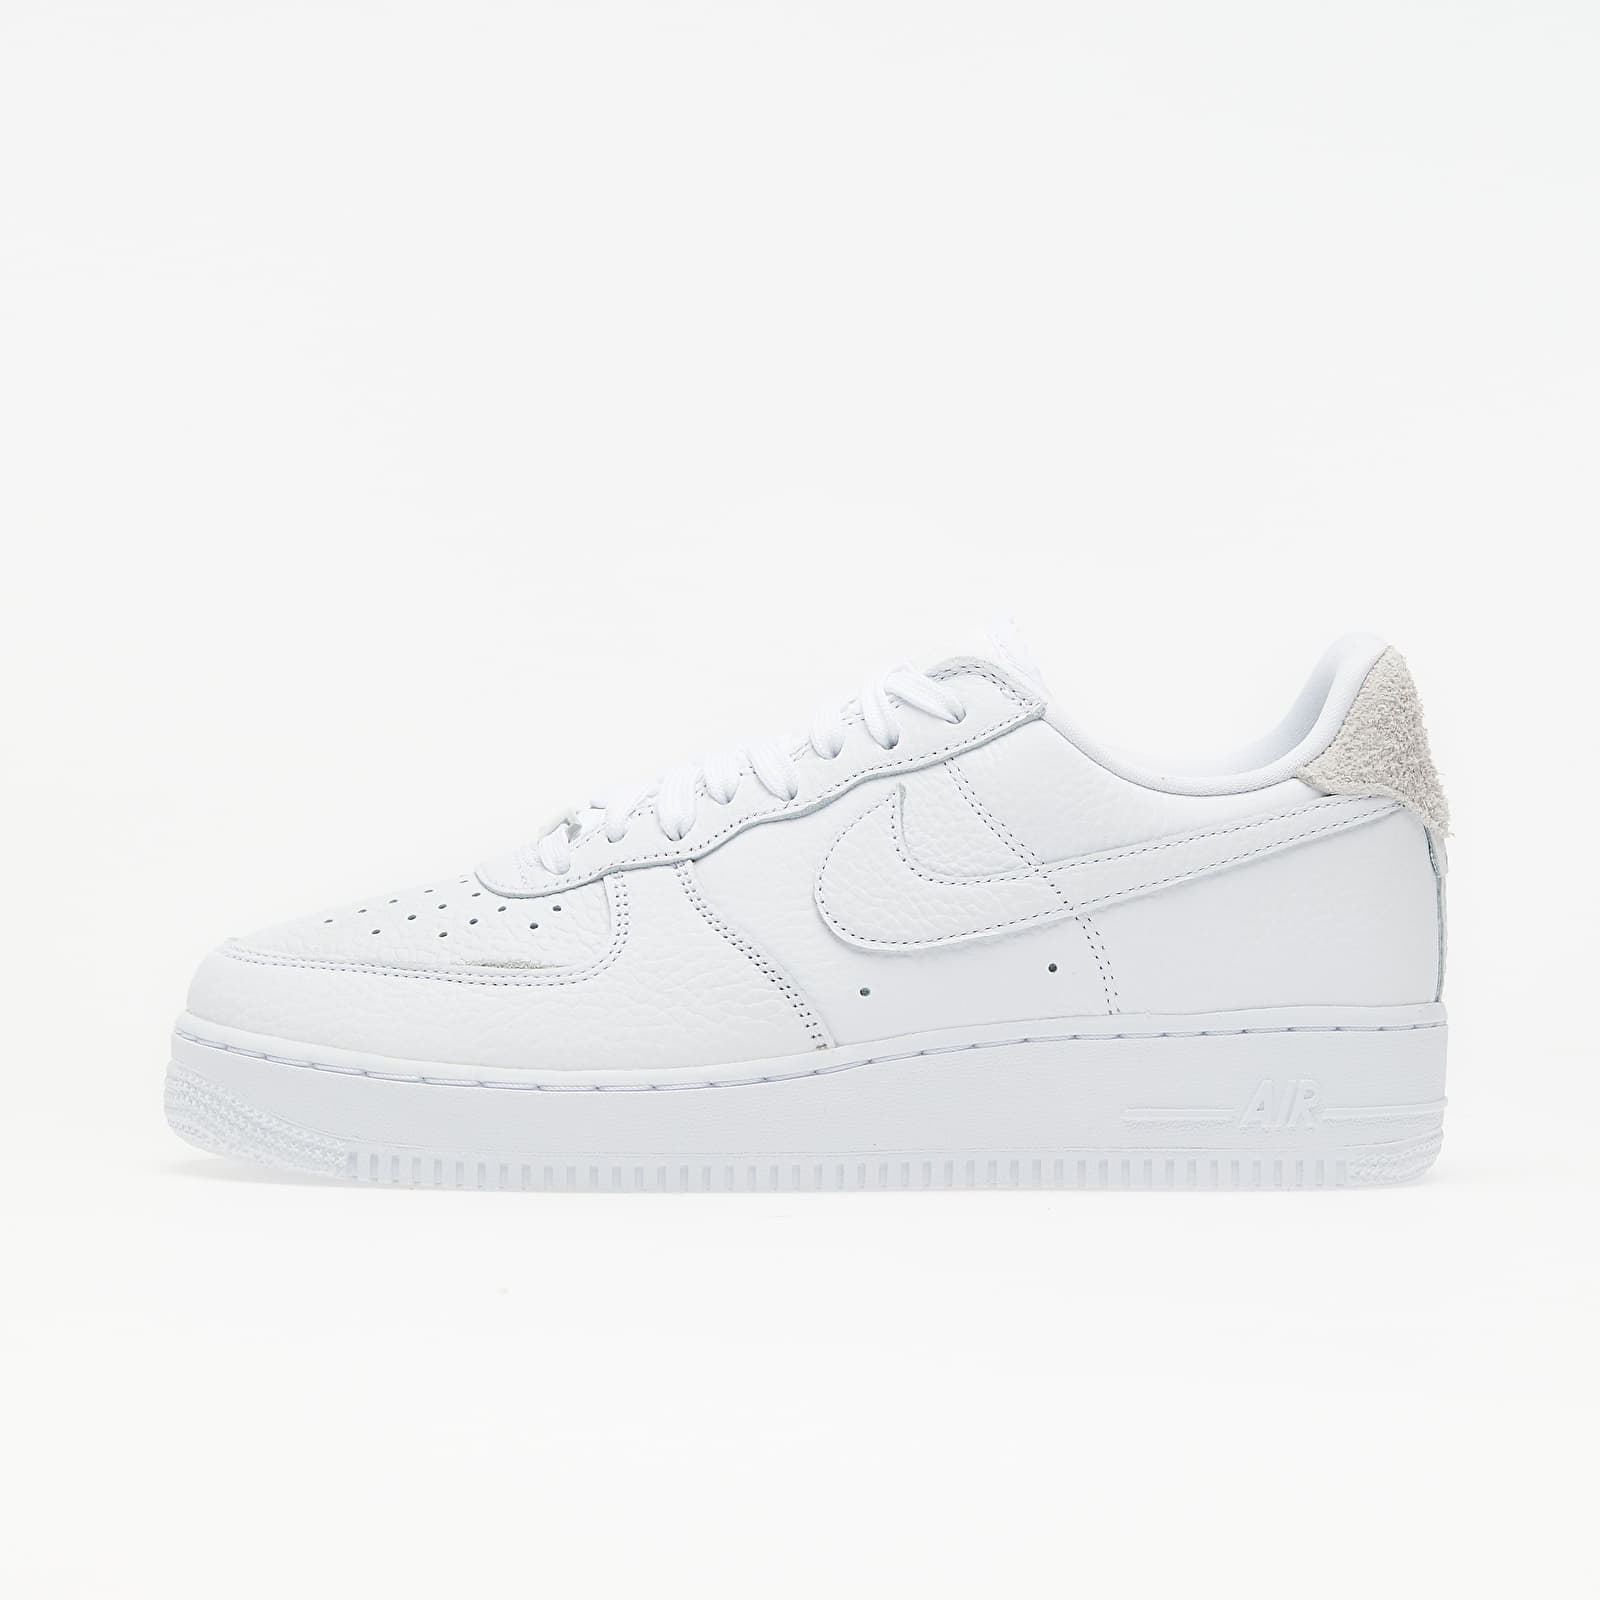 Men's shoes Nike Air Force 1 '07 Craft White/ White-Summit White-Vast Grey